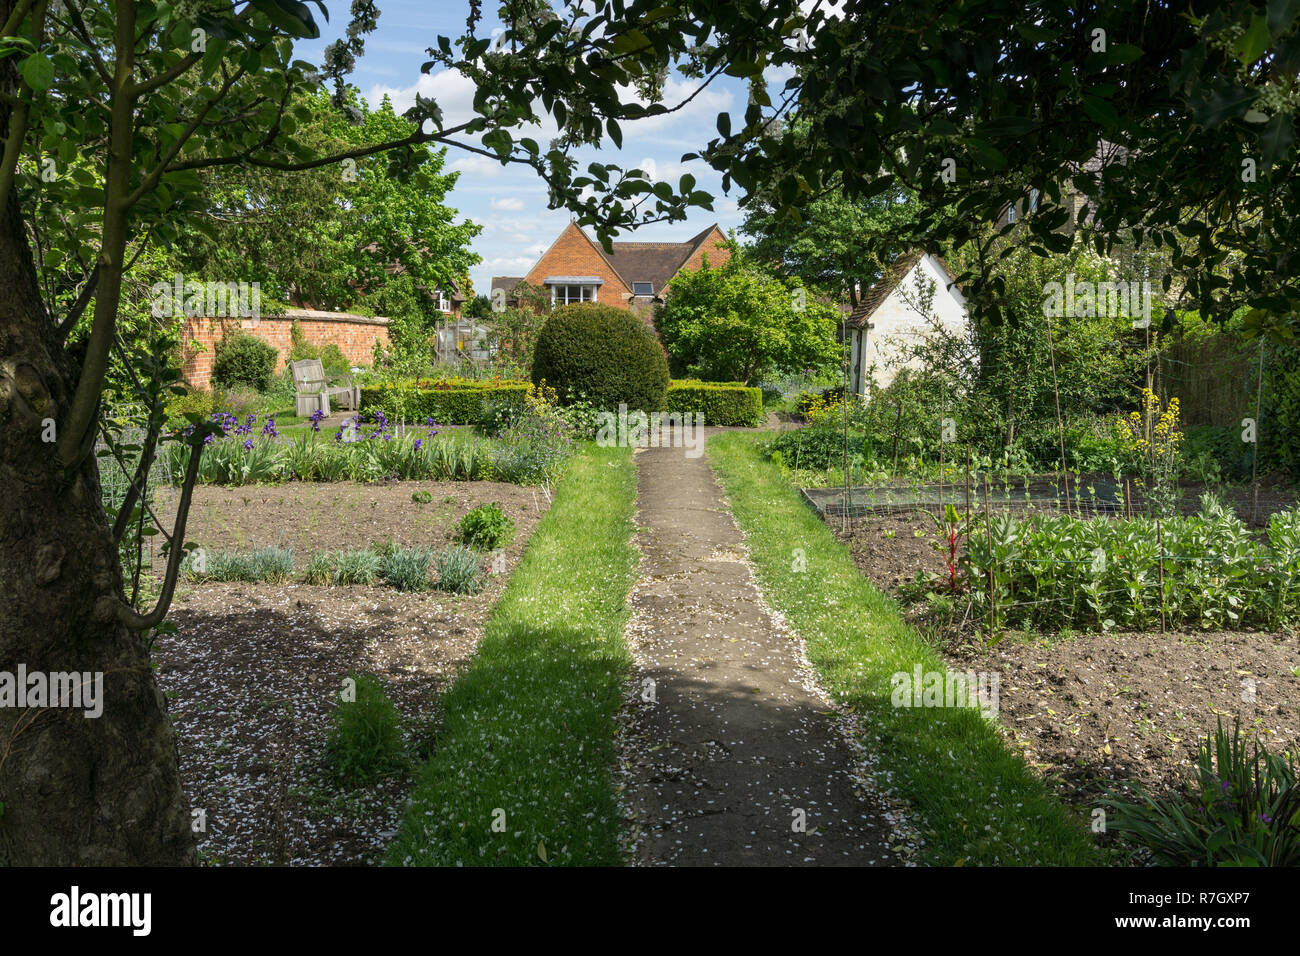 The Summer House Garden at the Cowper and Newton Museum, Olney, Buckinghamshire, UK; the poet William Cowper used the Summer House to write. - Stock Image